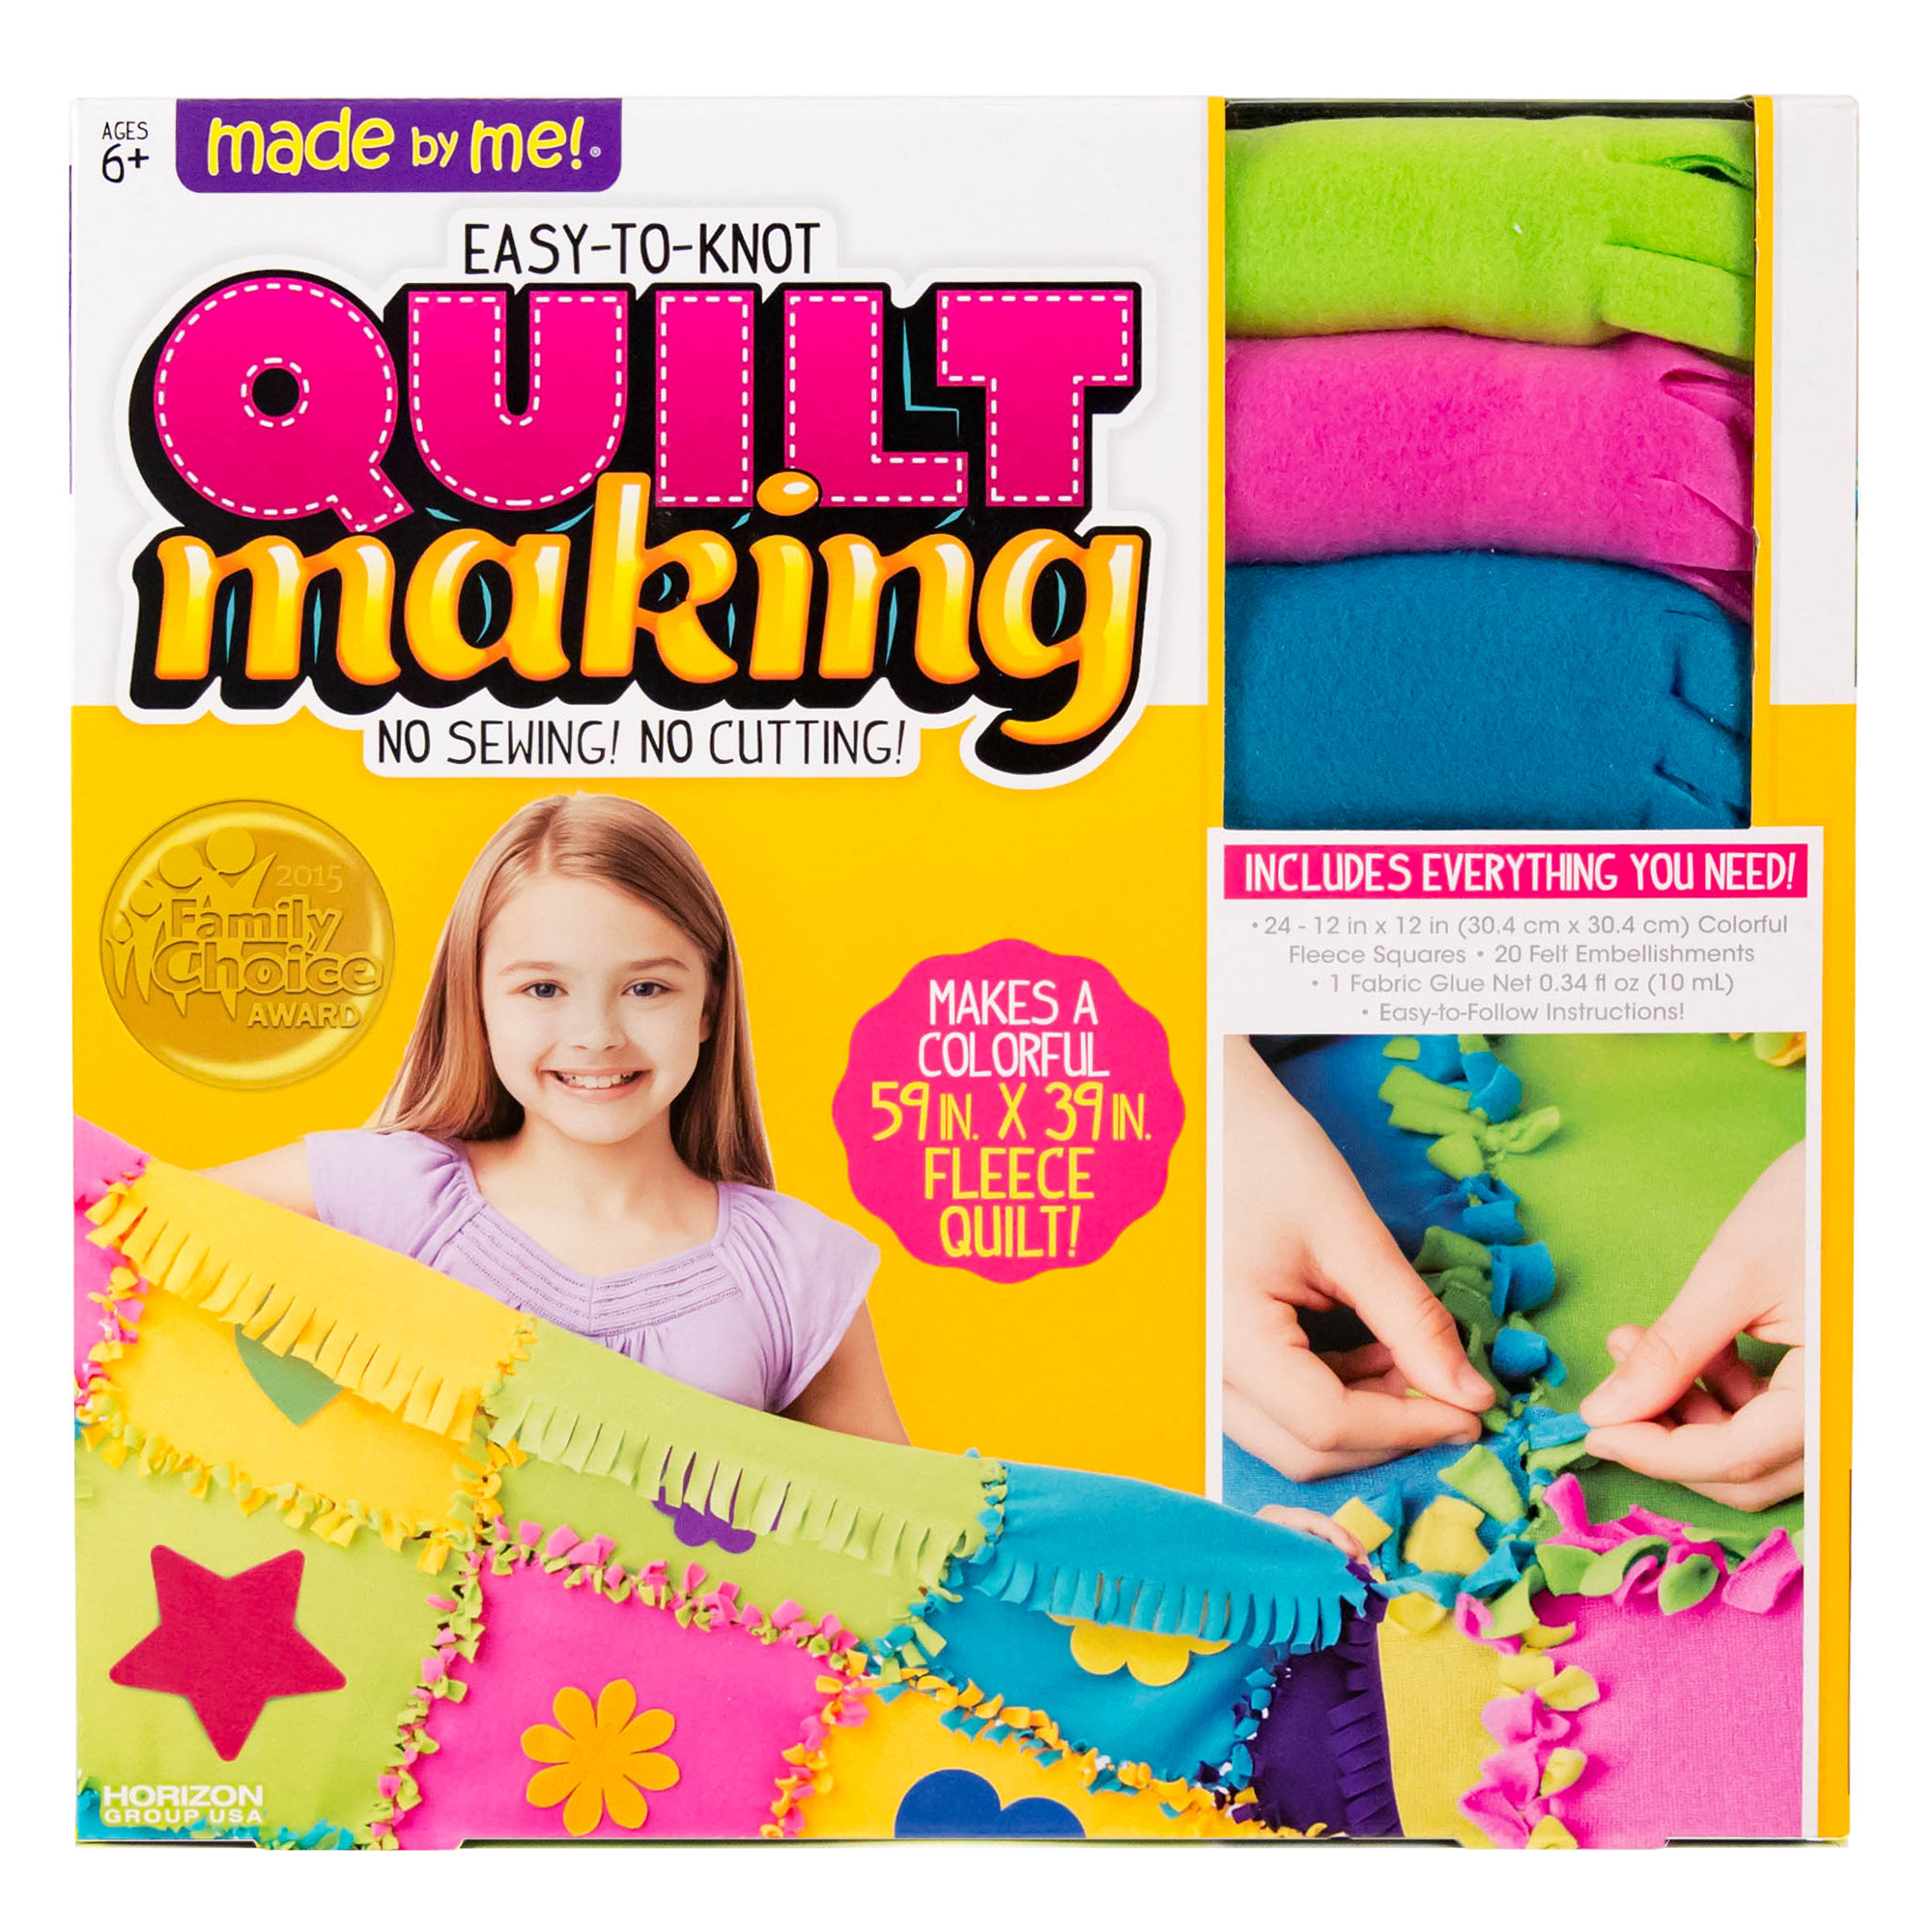 Made By Me Fleece Knotted Quilt Making Kit by Horizon Group USA